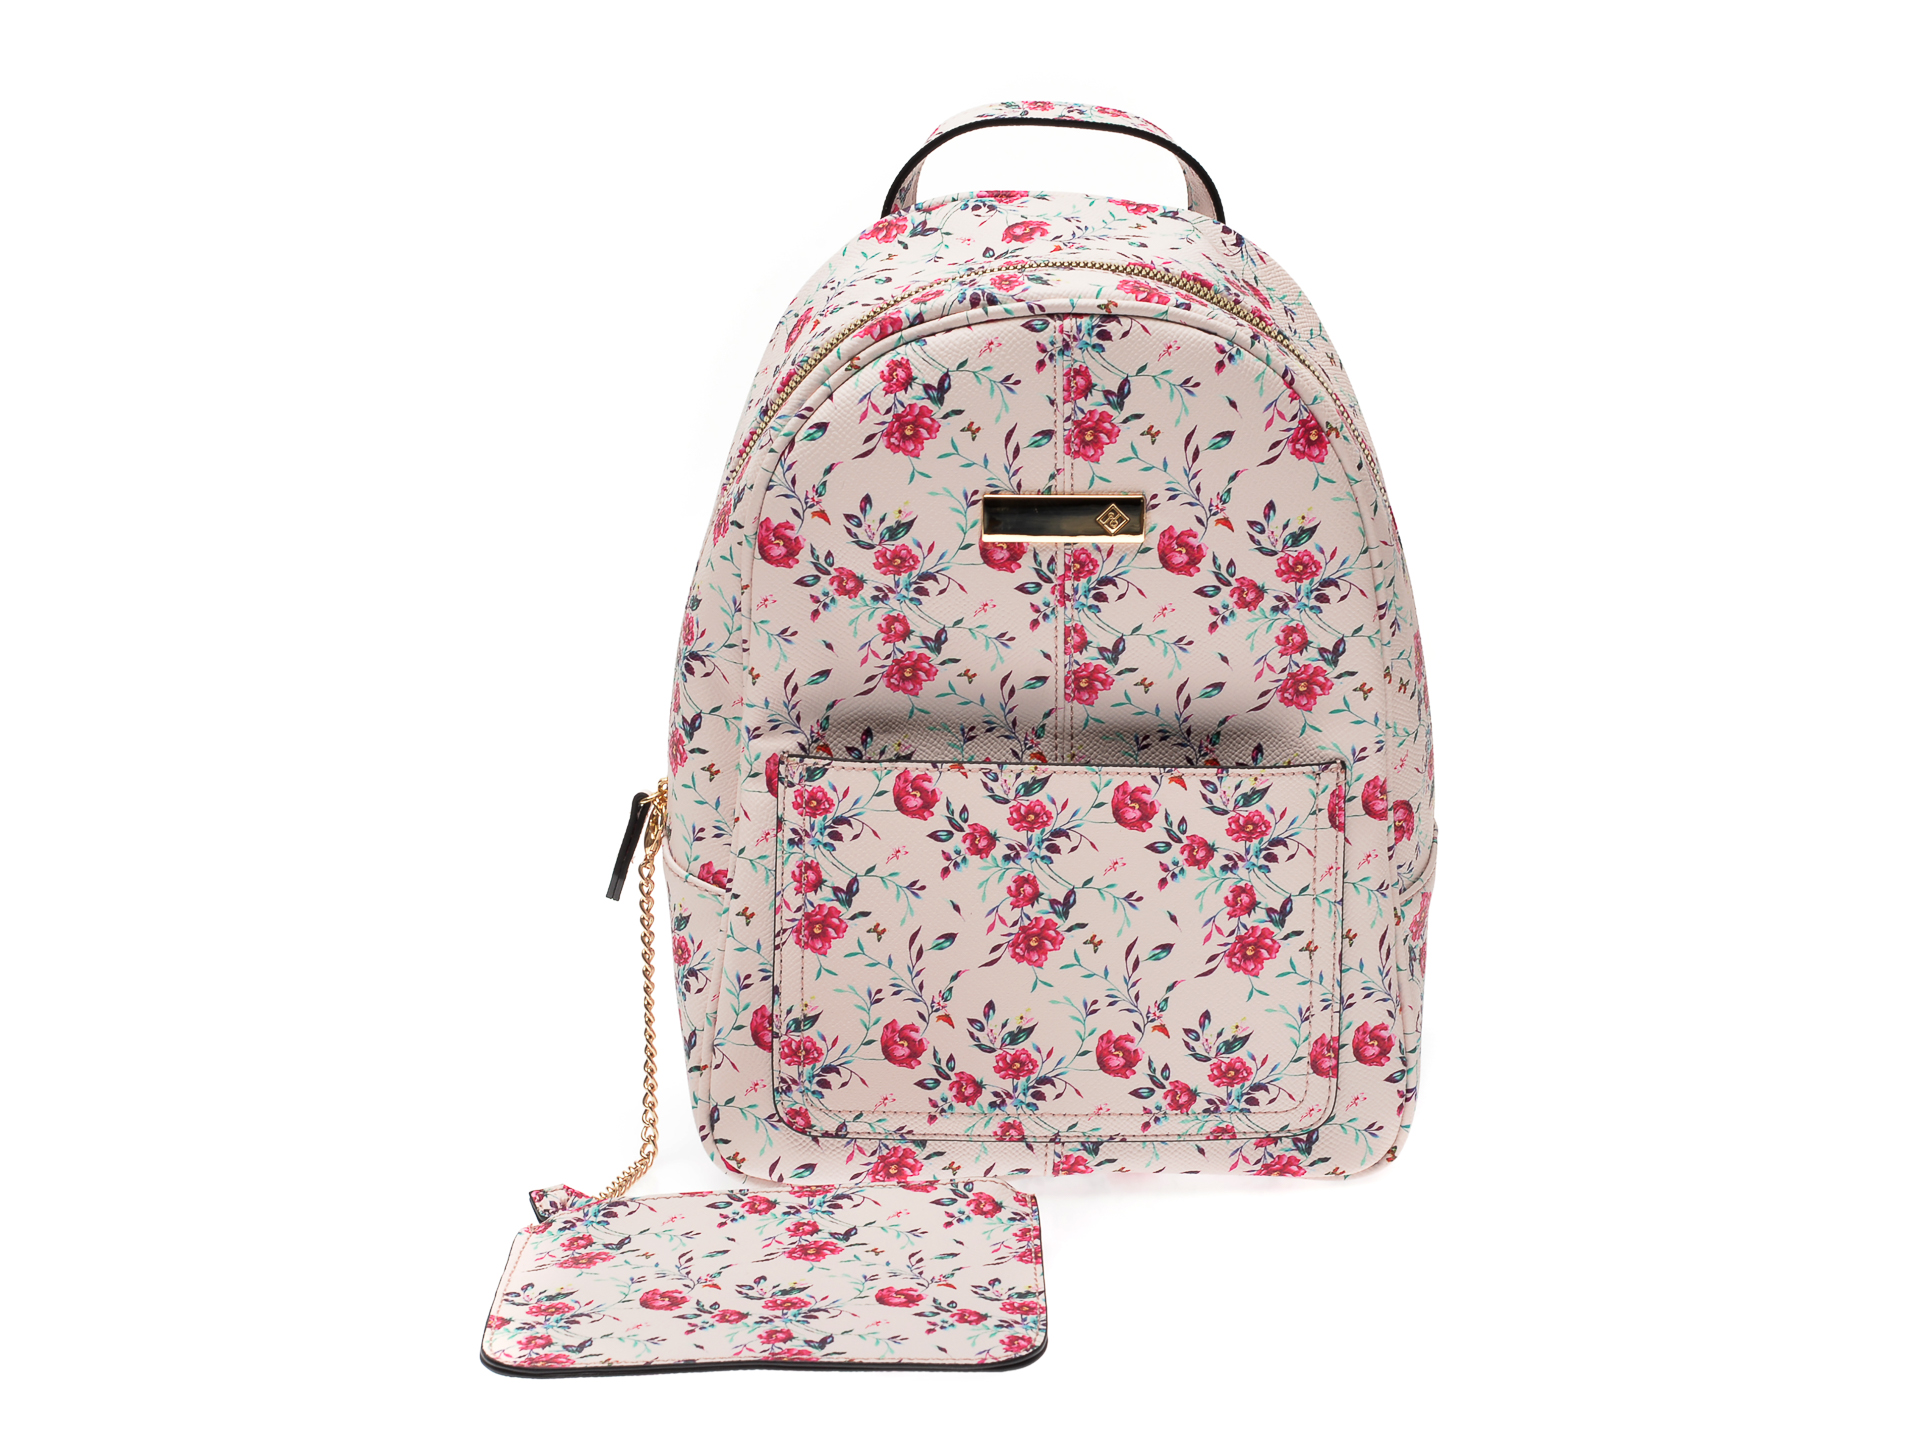 Rucsac CALL IT SPRING multicolor, GOAL960, din piele ecologica imagine